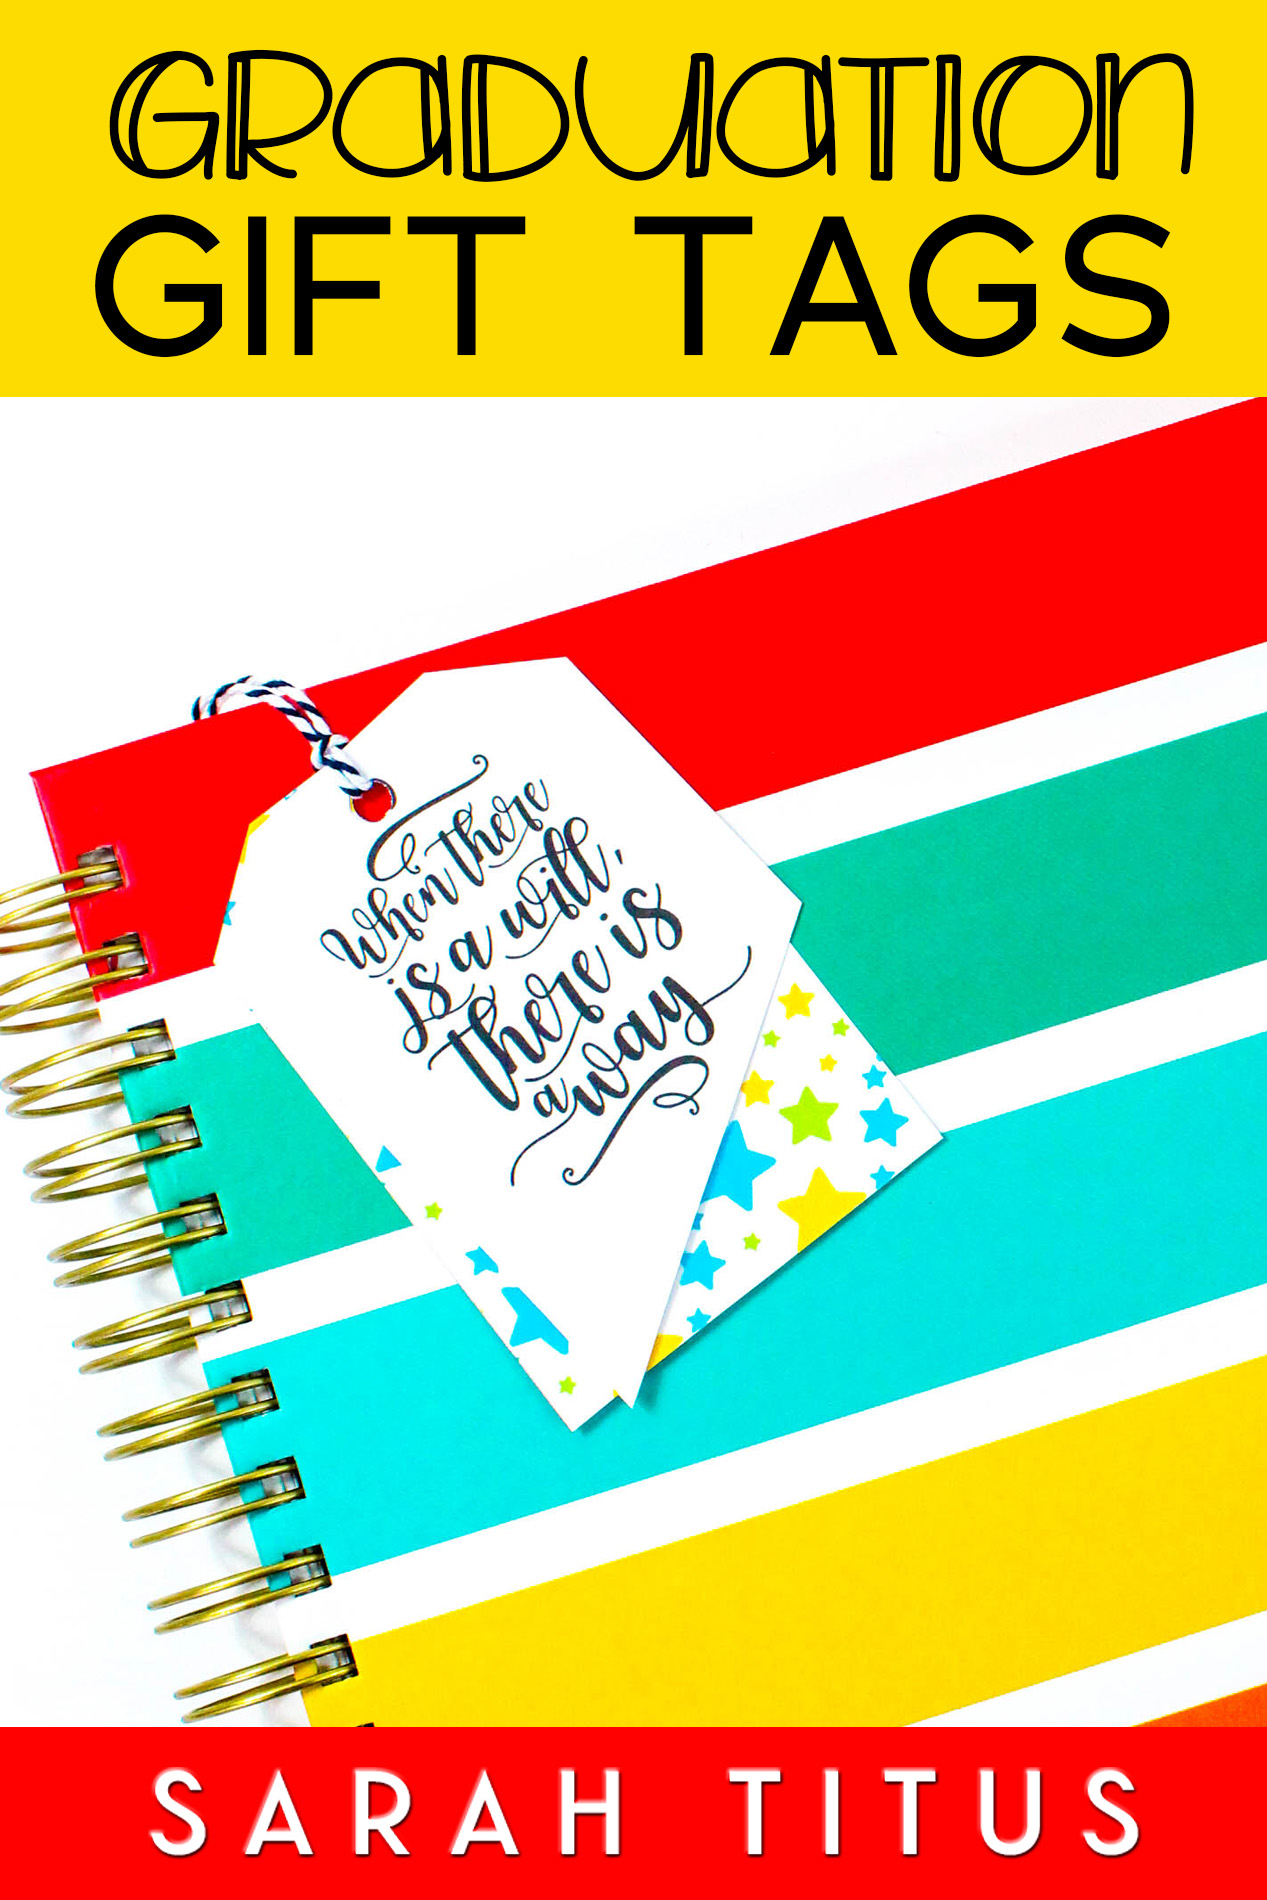 Your graduate is special to you, so is your gift. Adorn your loving gift with these unique and one-of-a-kind free printable graduation gift tags! #FreePrintables #GraduationGiftTags #GraduationGiftTagsPrintableFree #graduationgift #grad #graduationgifttag #gradgift